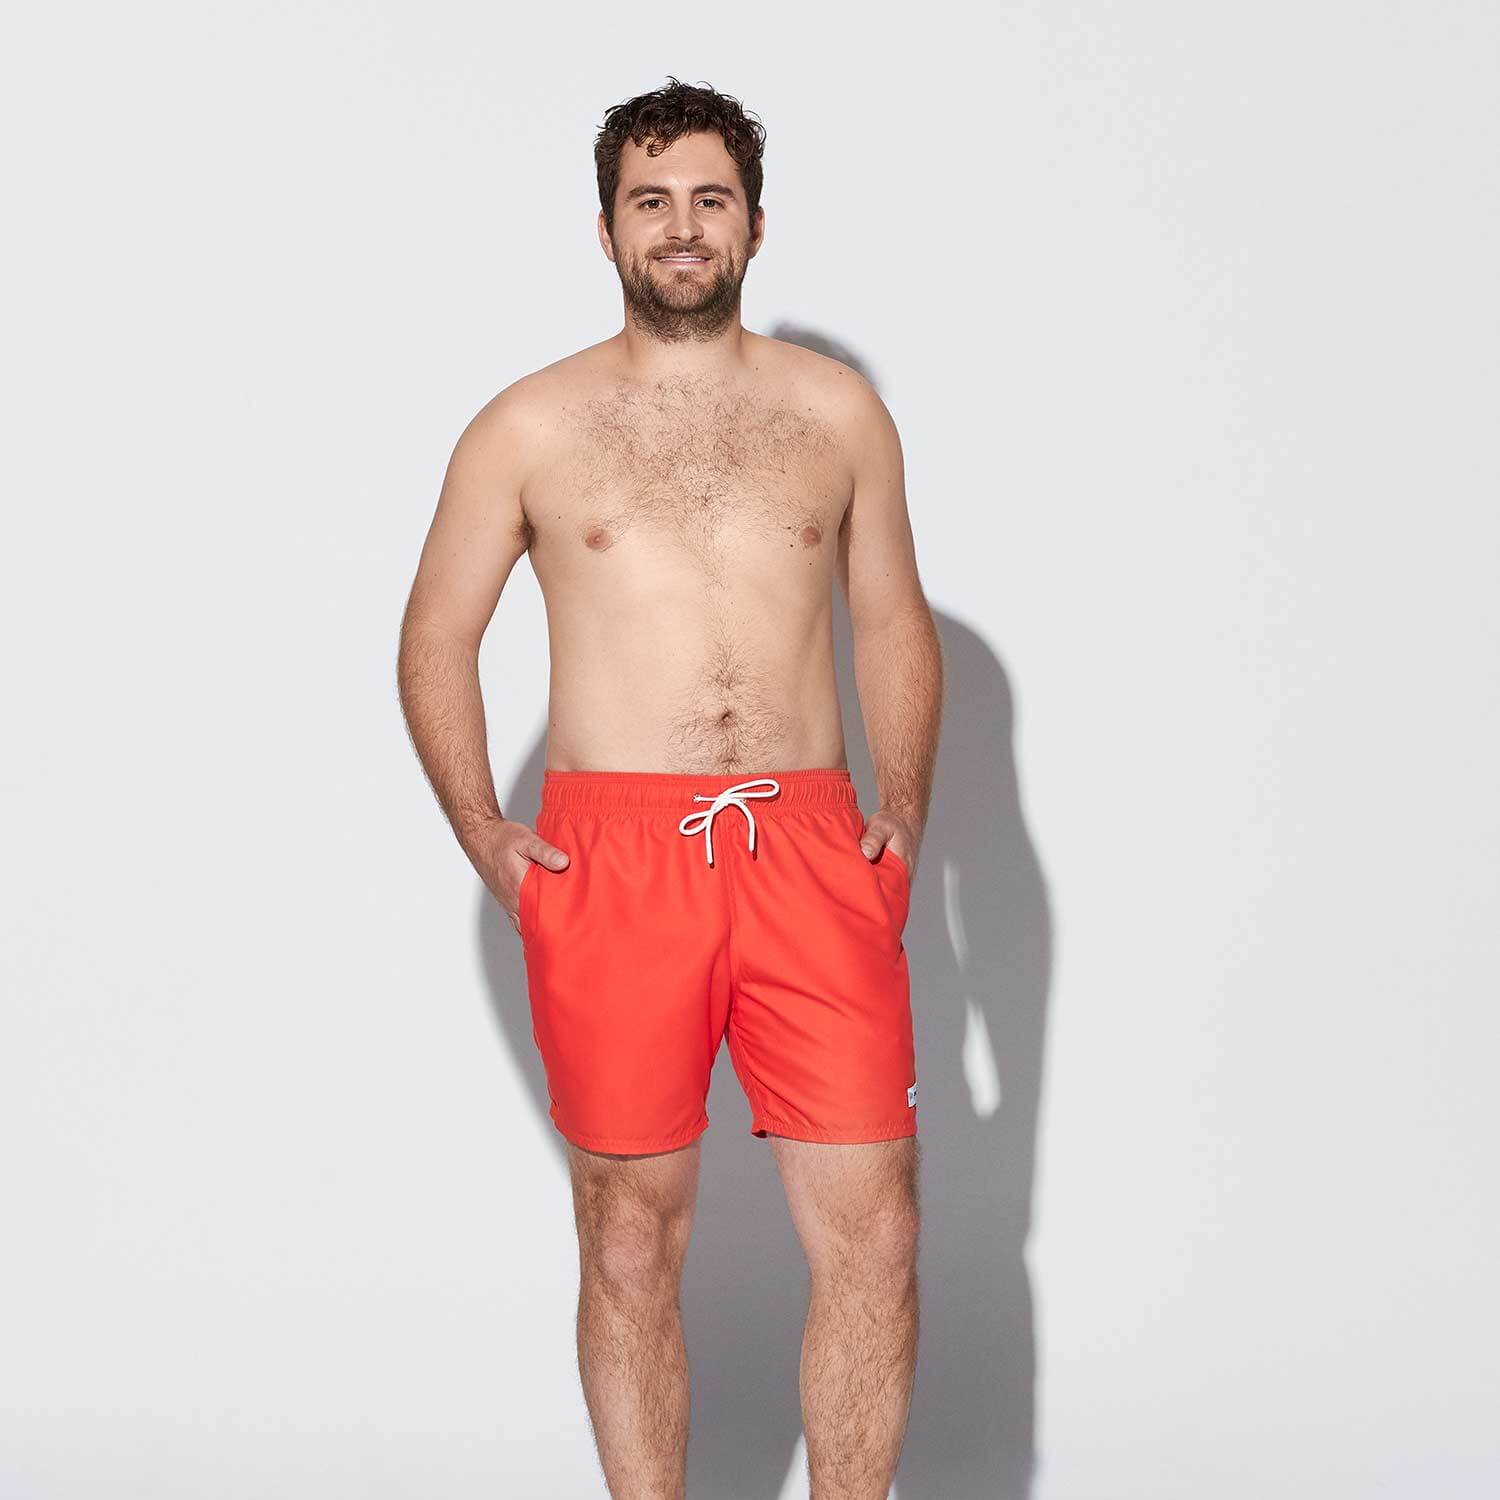 The Muy Picantes Swim Shorts SHORTS Mr. Summer